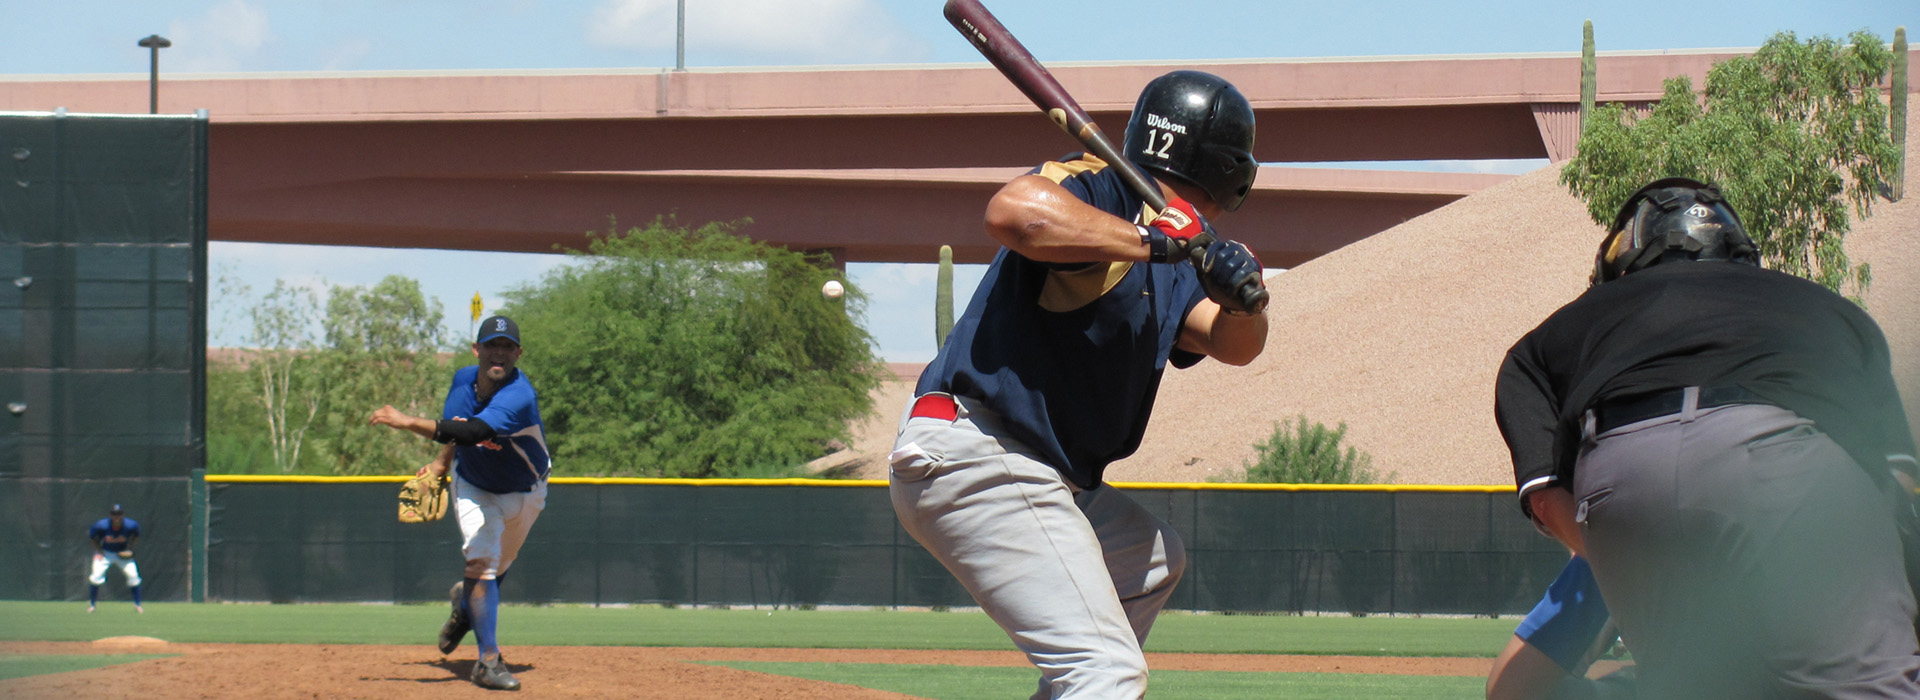 Arizona-Mens-Senior-Baseball-League-AZMSBL-Homepage7